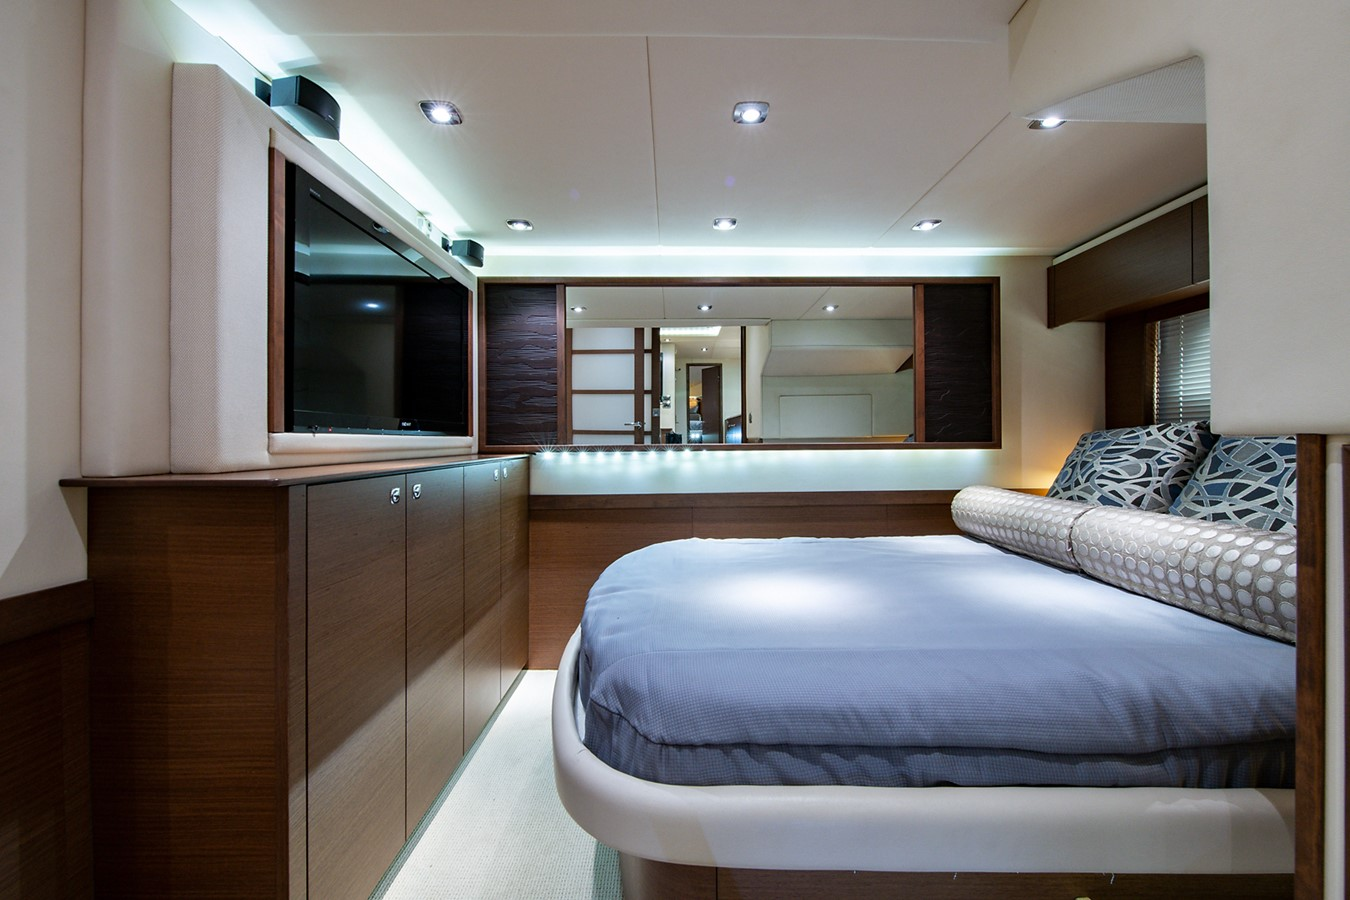 2013 SEA RAY Sundancer Motor Yacht 2531180